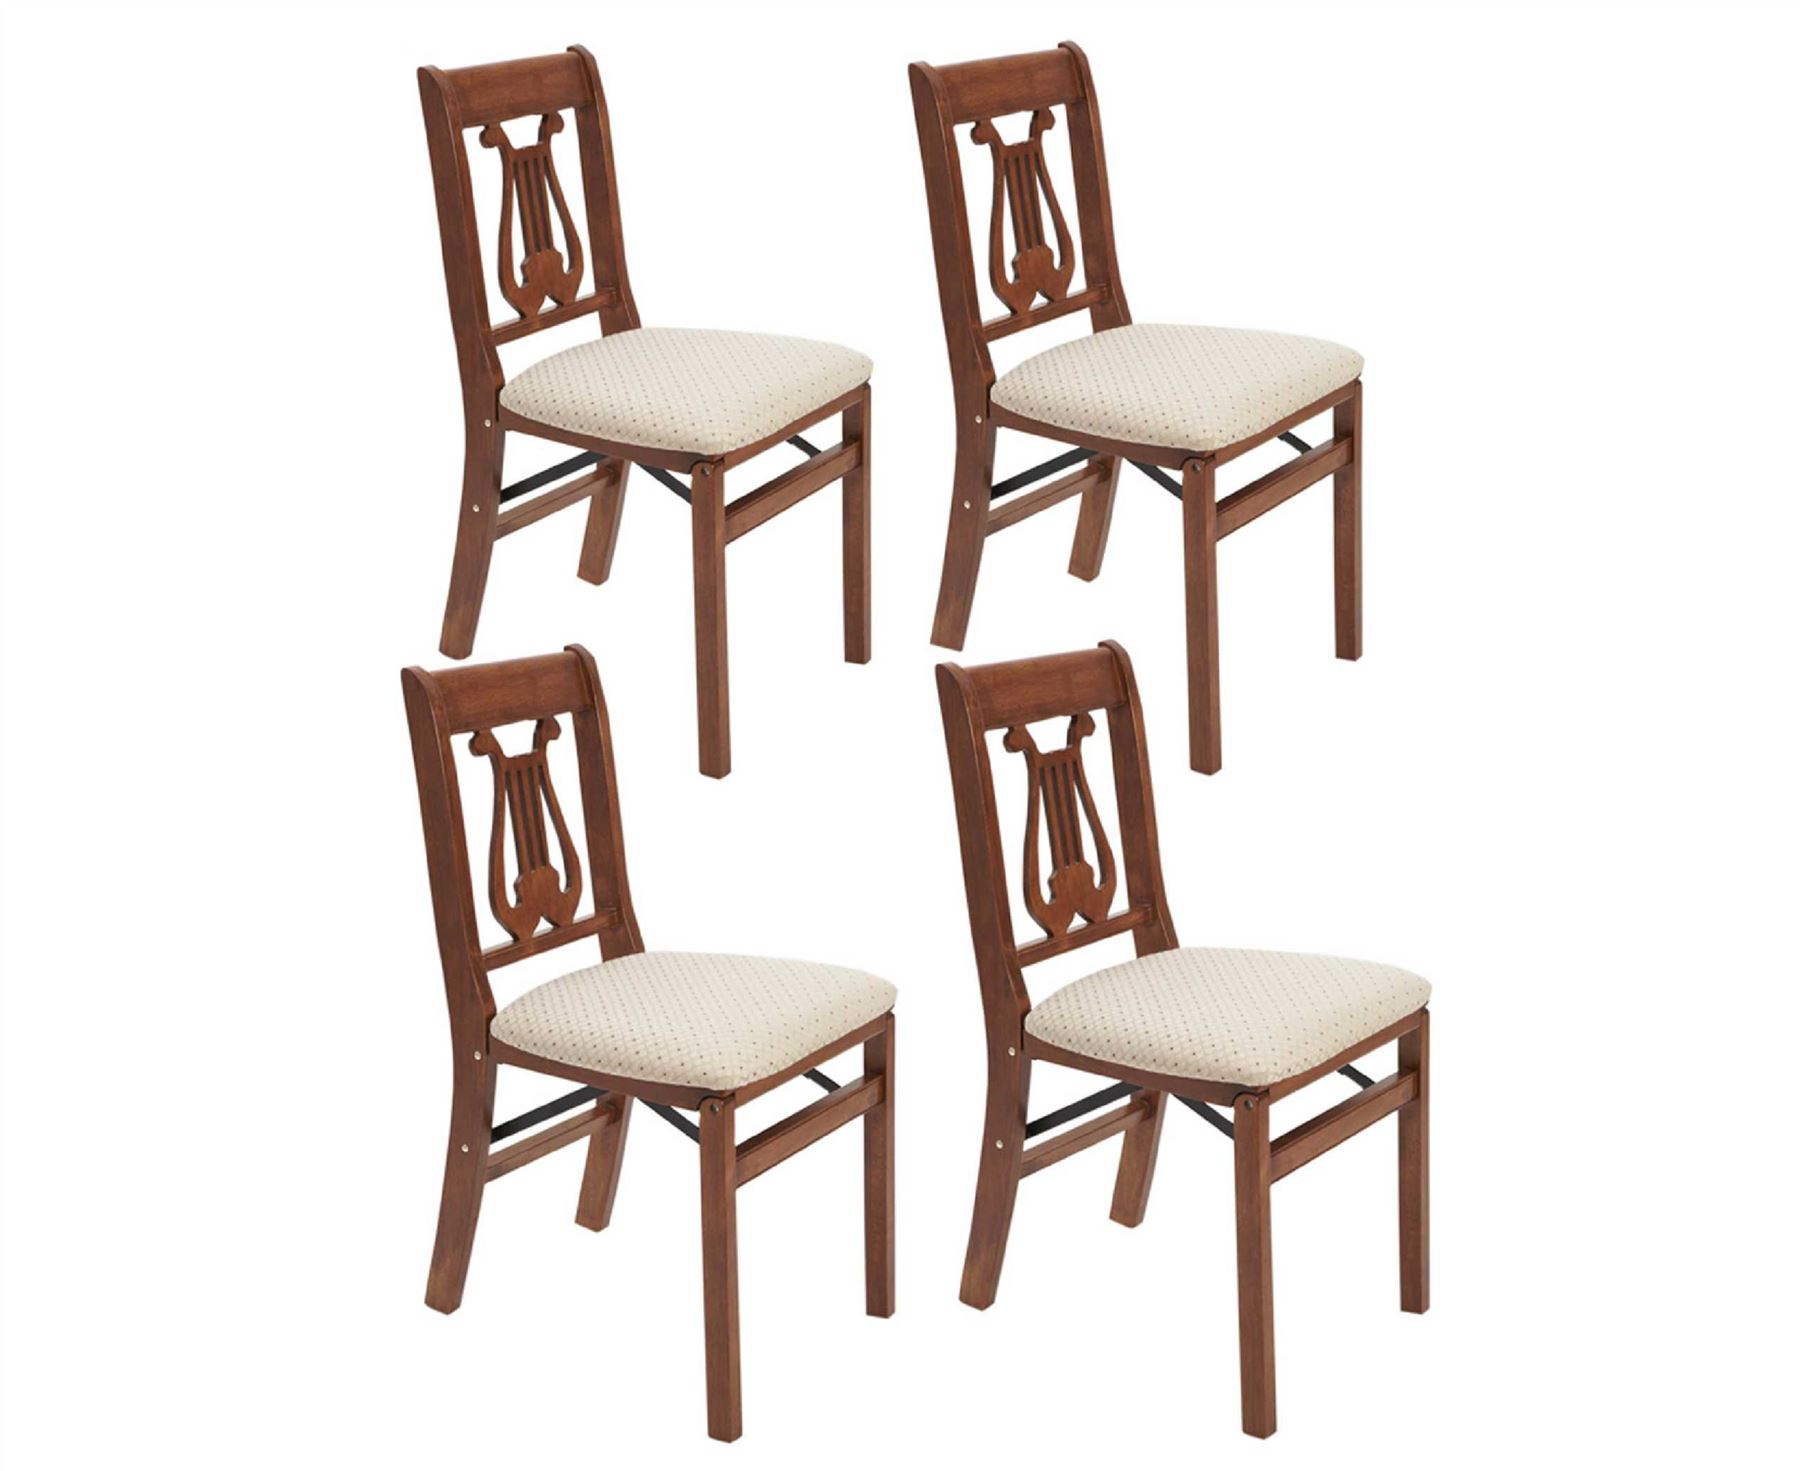 Set Of 4 Lyre Back Folding Chairs Dining Furniture Solid Wood Brown Kitchen New Ebay